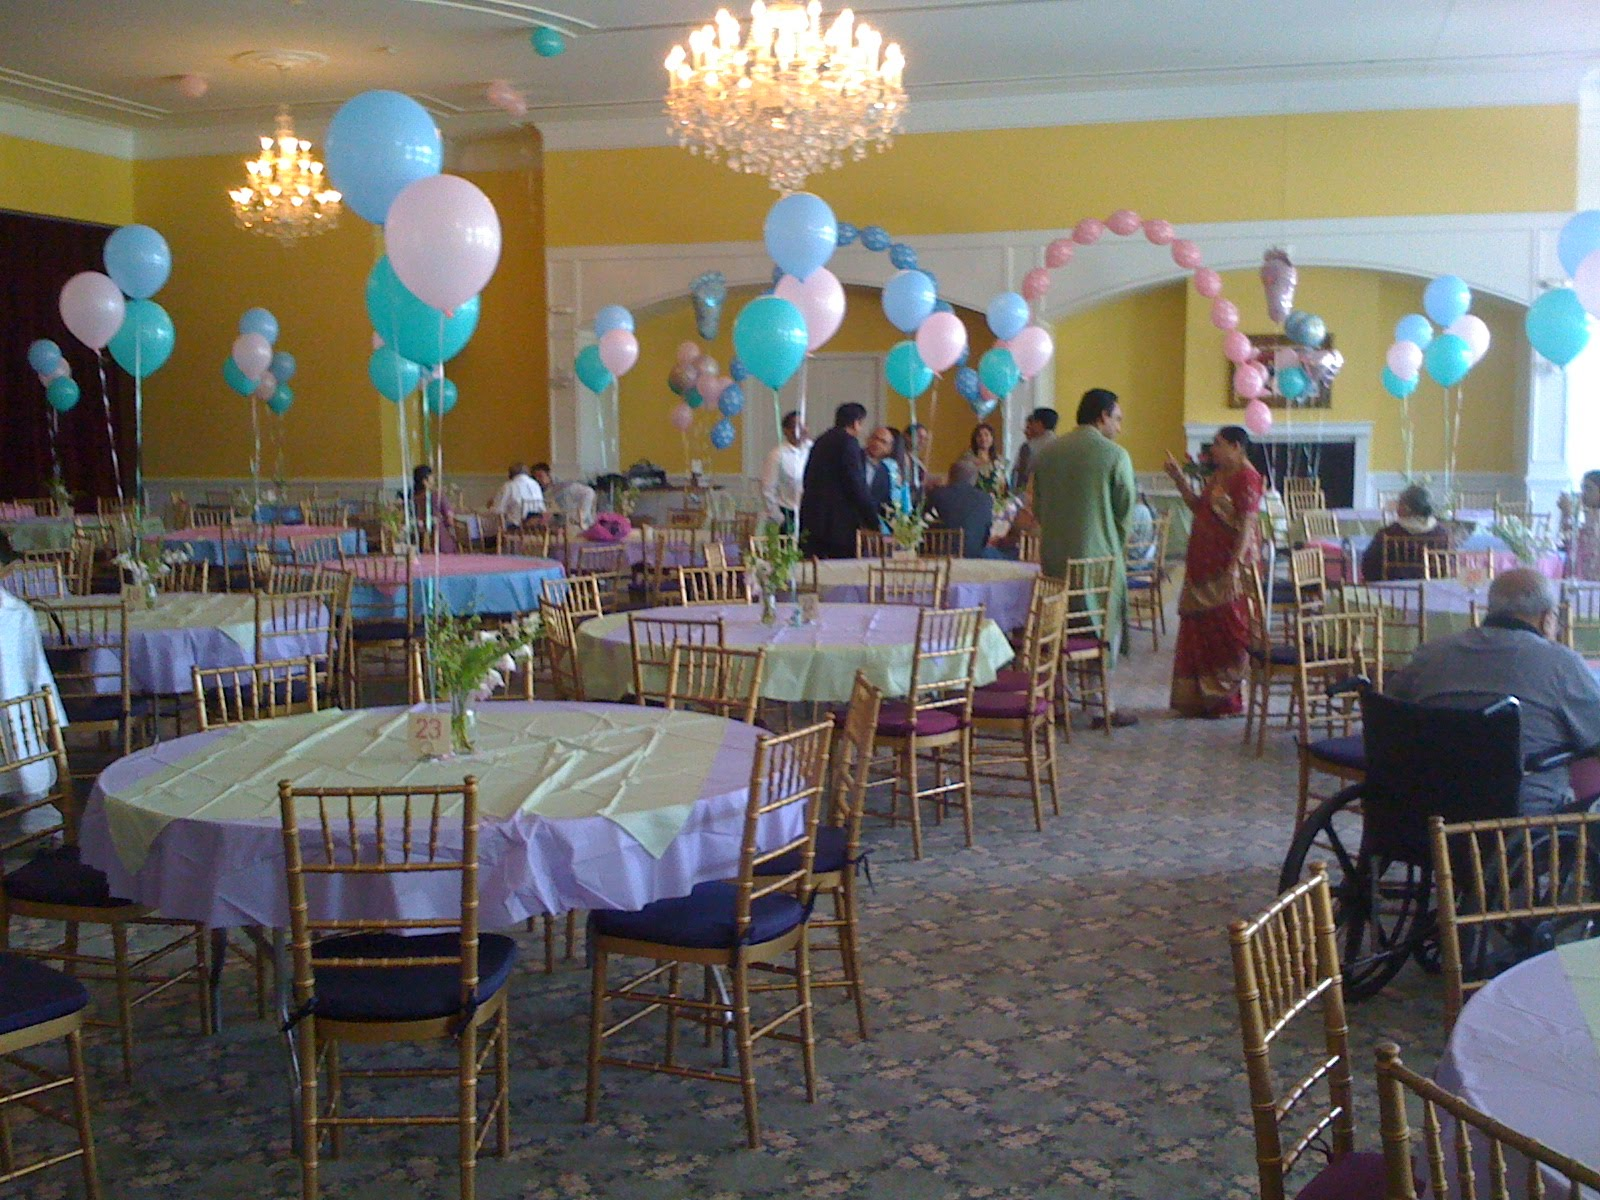 Foxchase manor august 22 2010 foxchase north ballrooms for Baby shower hall decoration